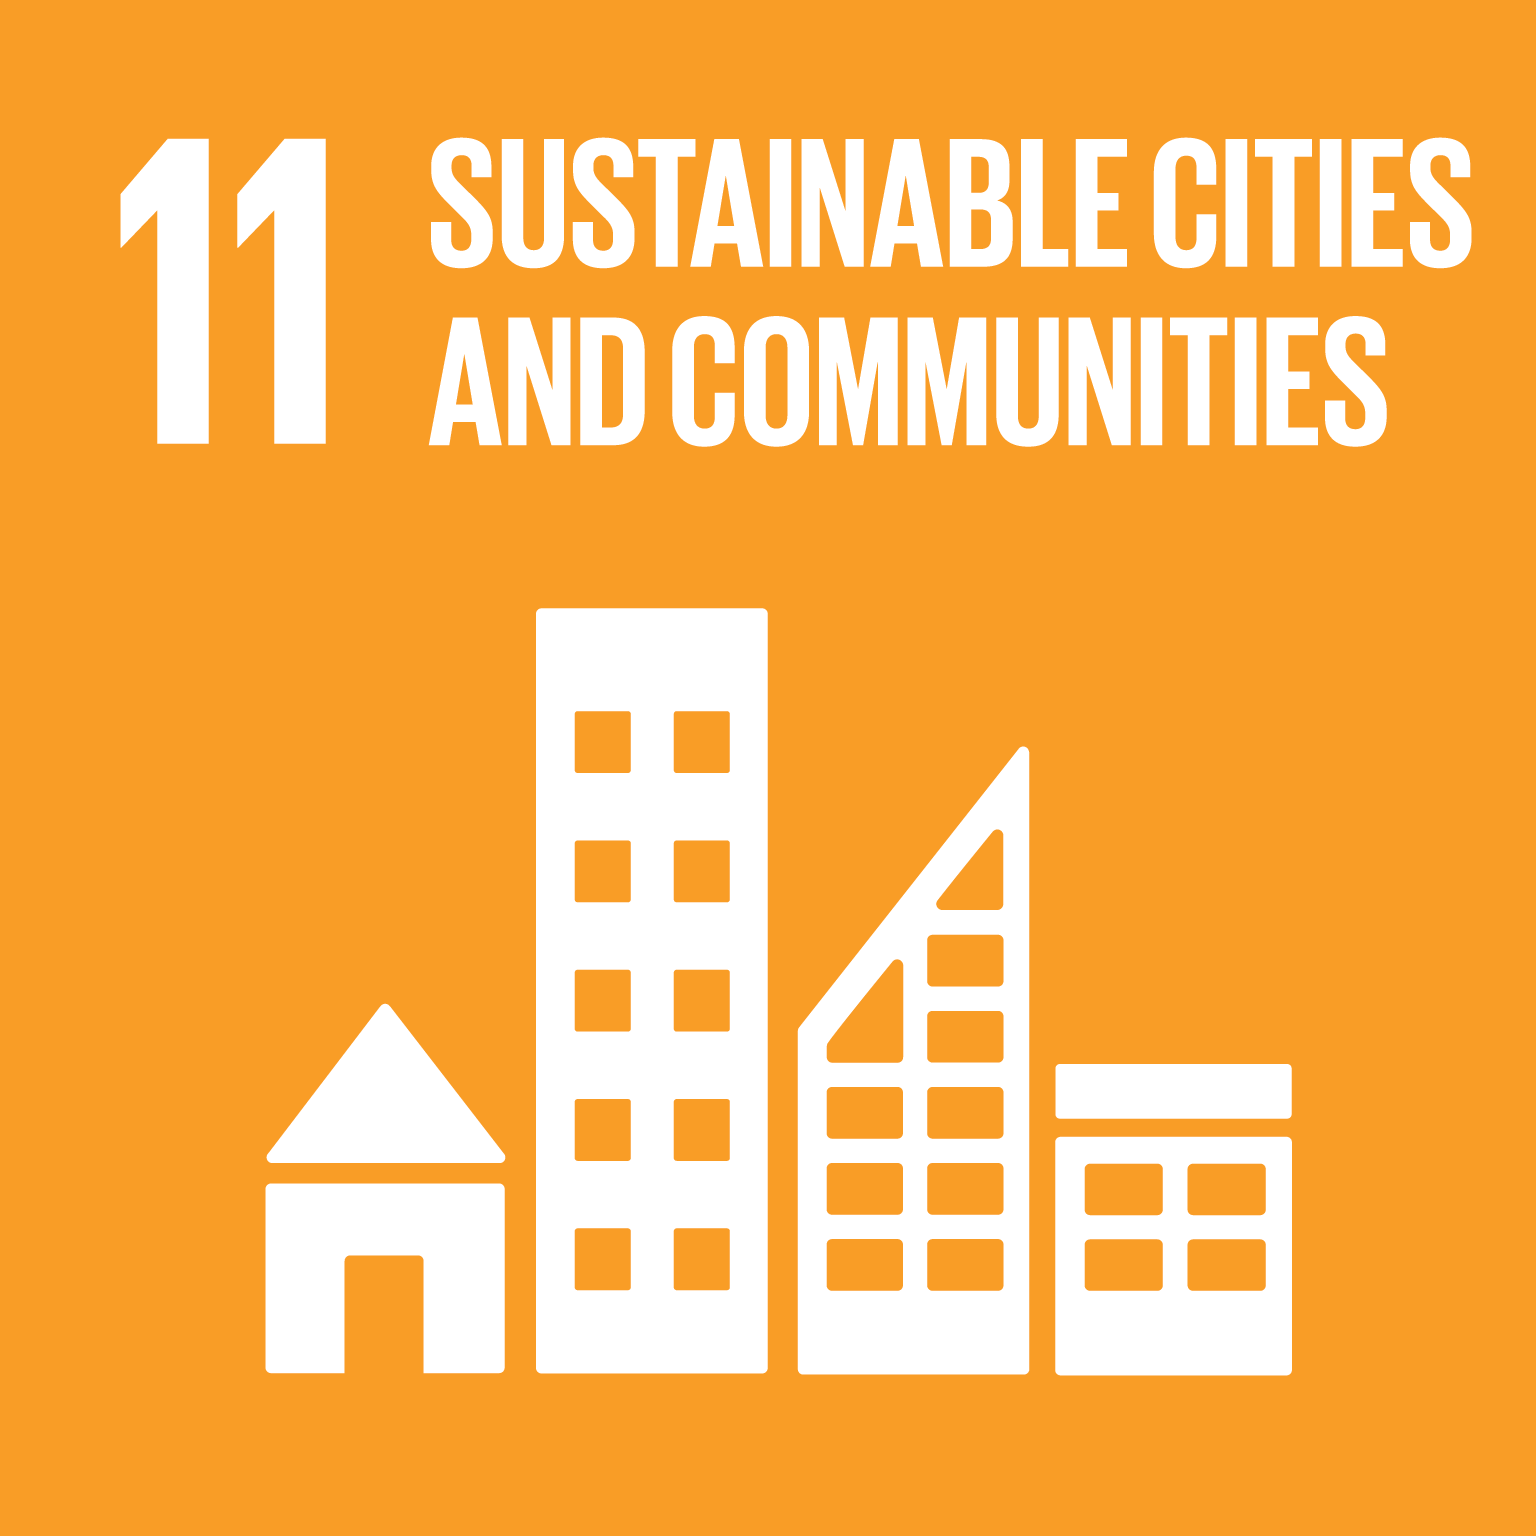 Sustainable cities and communities (11)